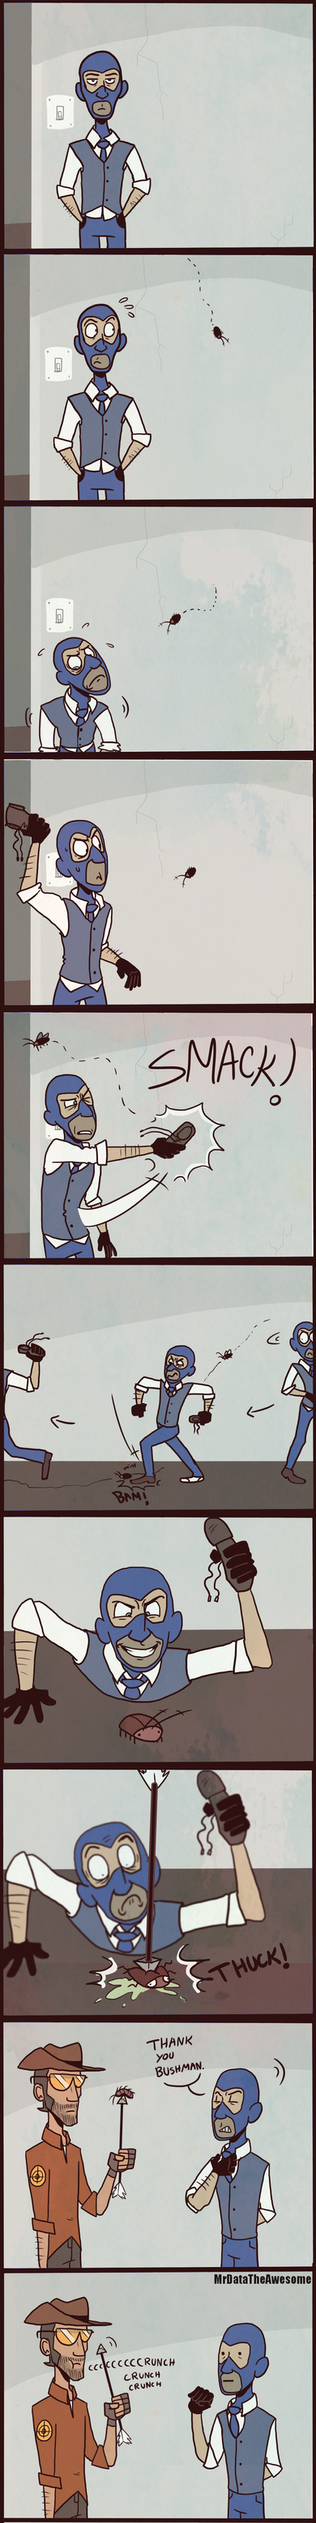 TF2- Great Protein Mate by MrDataTheAwesome